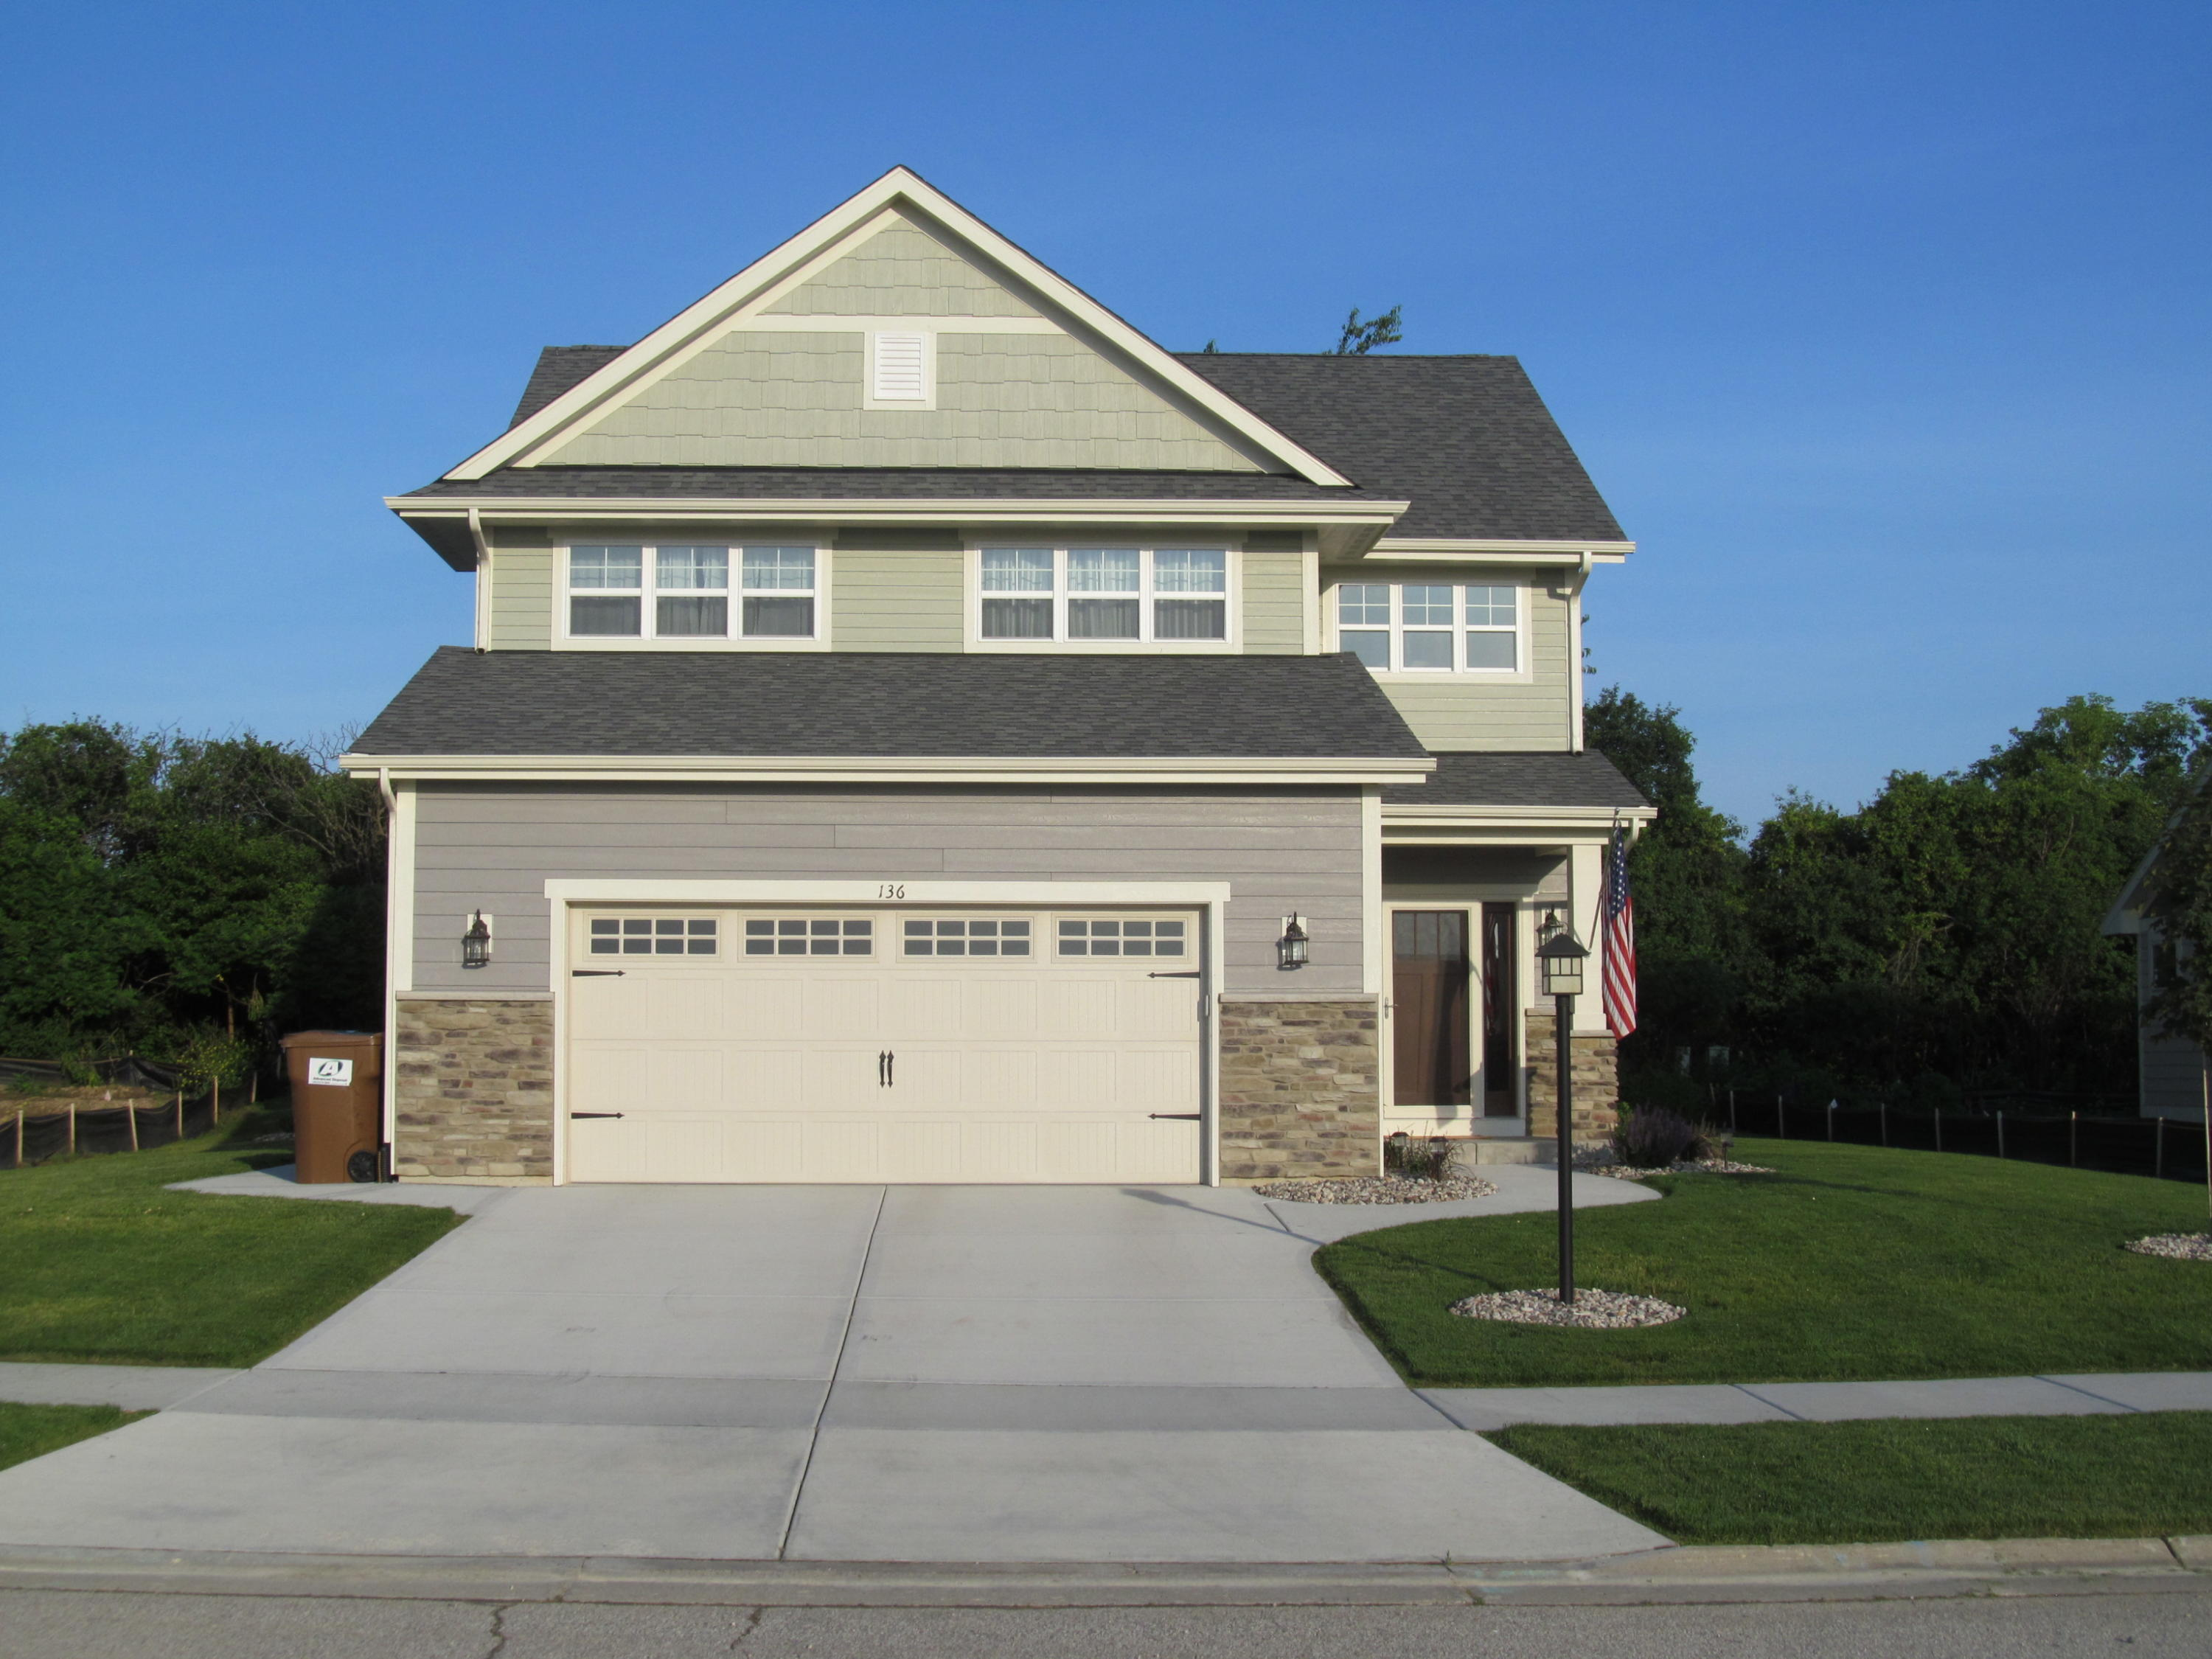 136 Portico Dr, Mount Pleasant, Wisconsin 53406, 3 Bedrooms Bedrooms, 7 Rooms Rooms,2 BathroomsBathrooms,Single-Family,For Sale,Portico Dr,1690362